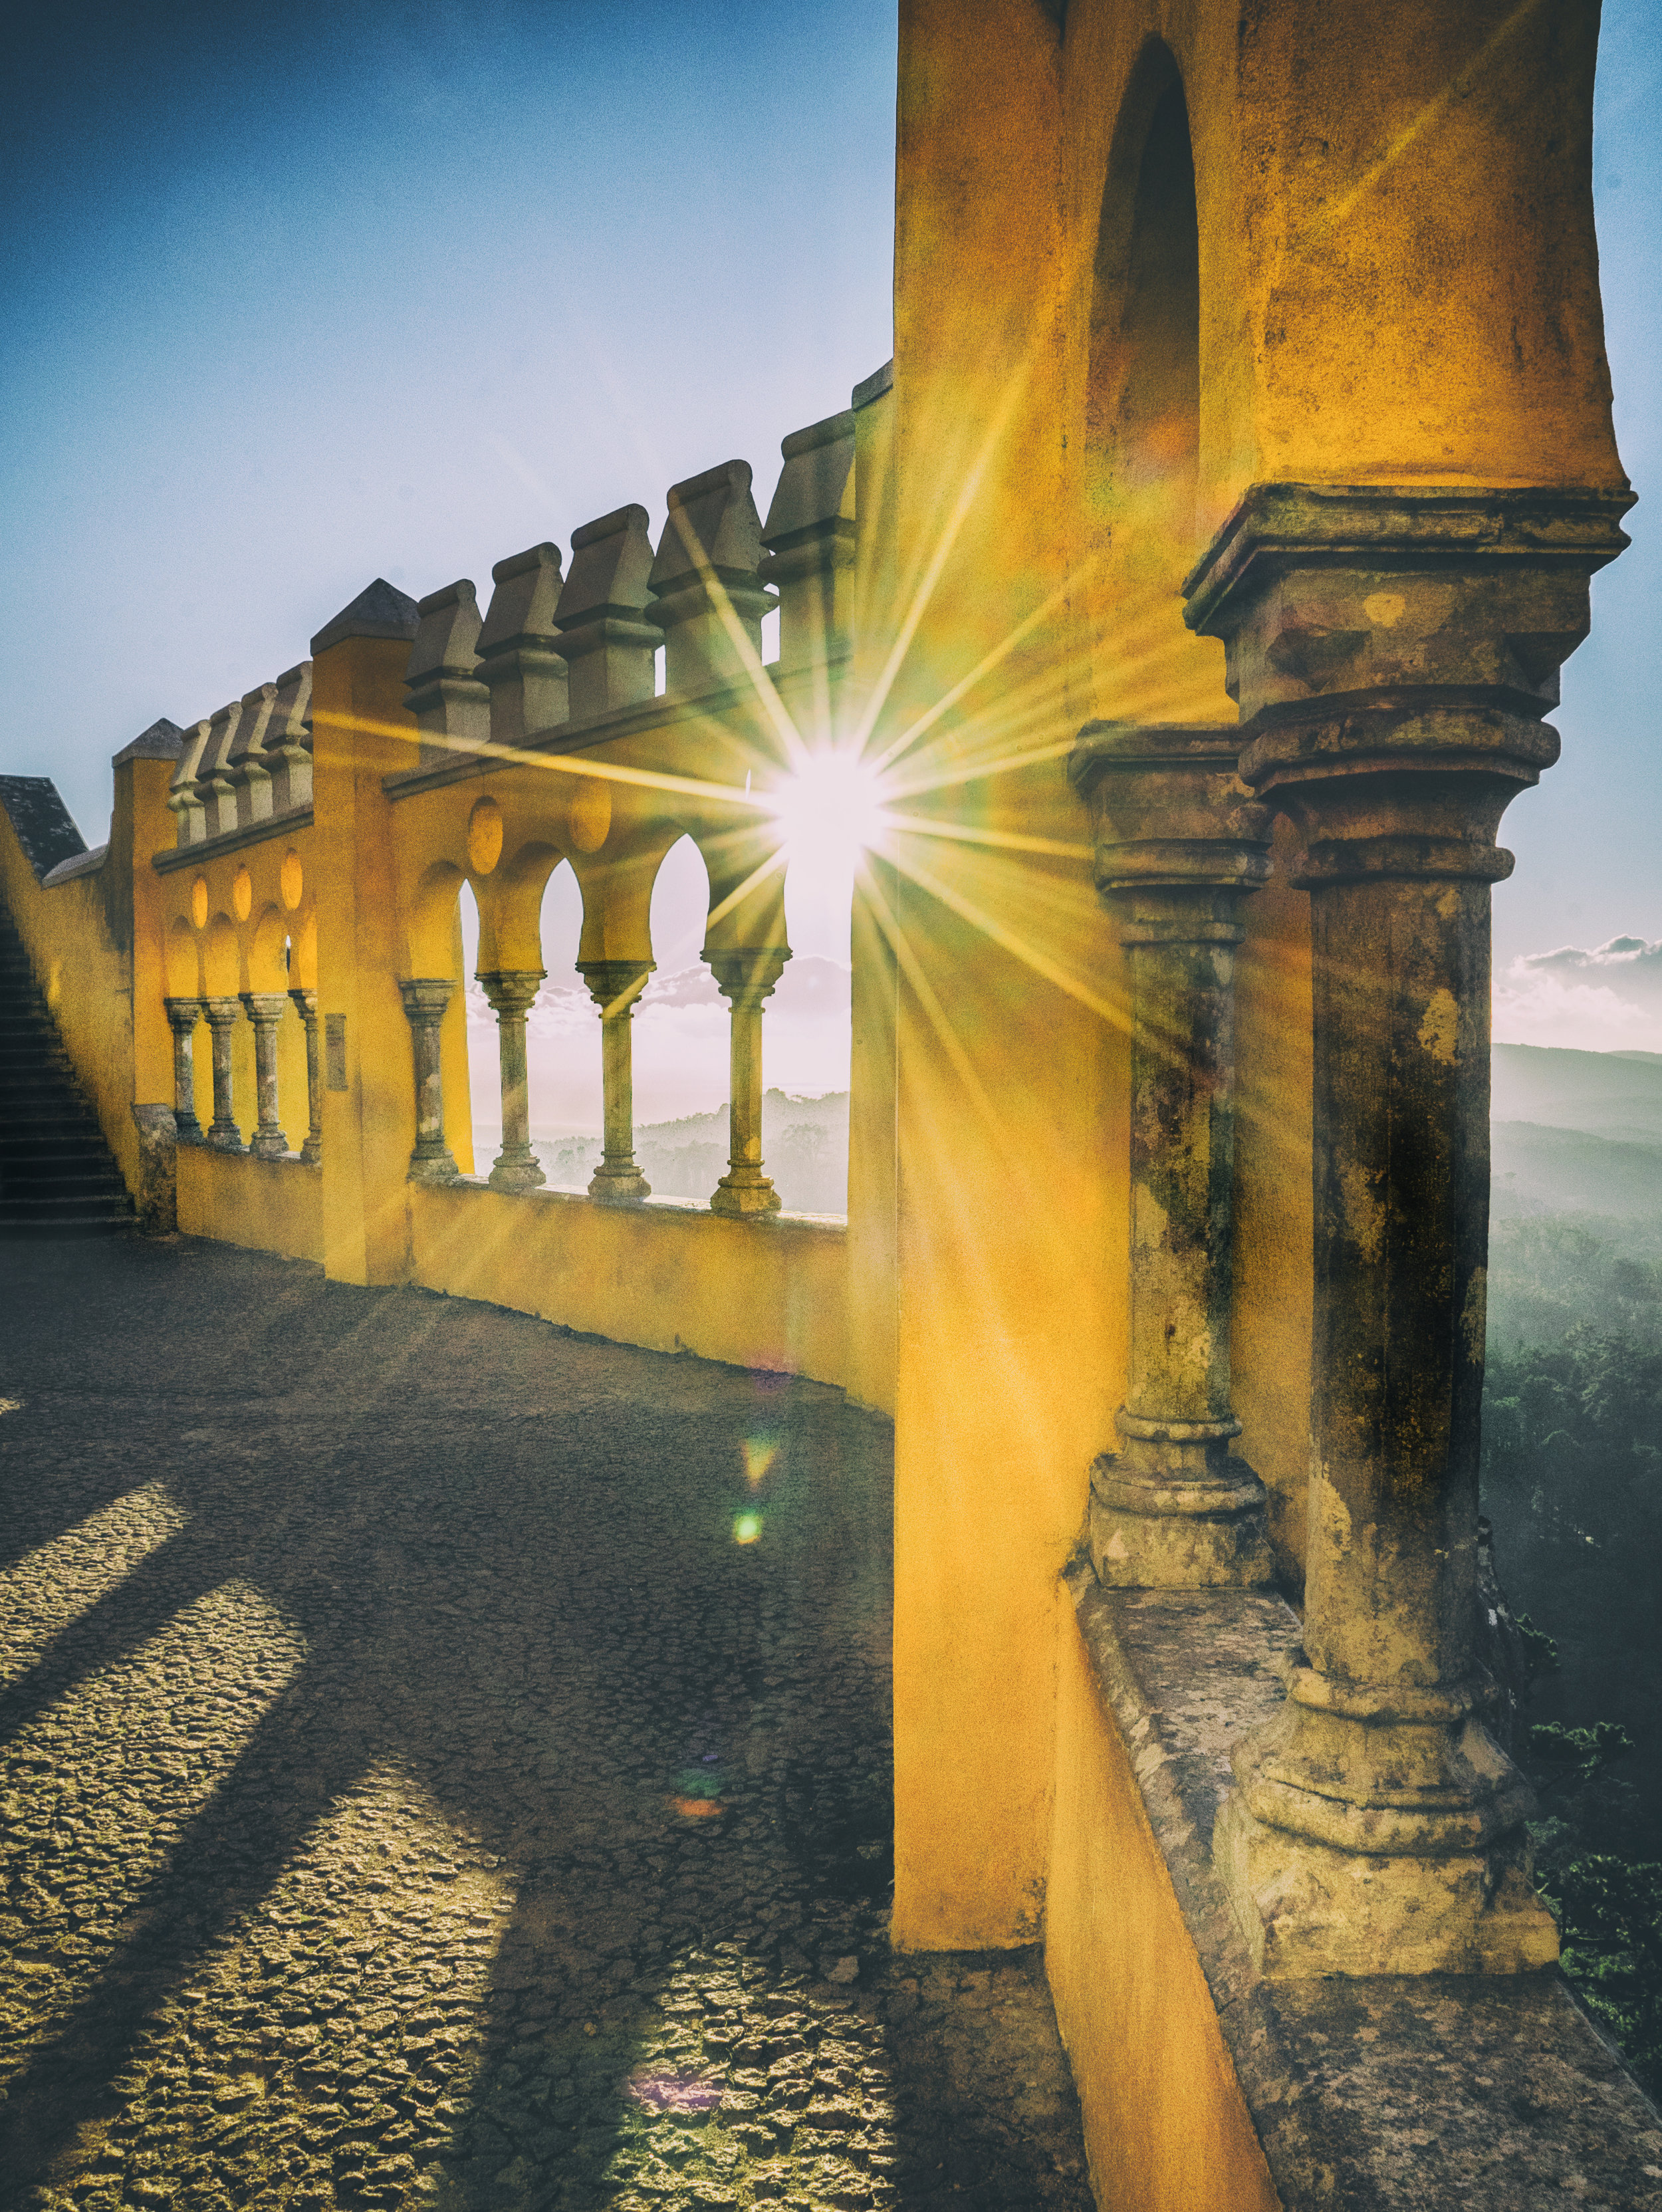 Portugal. Travel. Sintra. Sunshine. Hotel. History. view. room with a view. pena palace.  palace. town. old town. castle. castelo dos mouros. sunlight..jpg